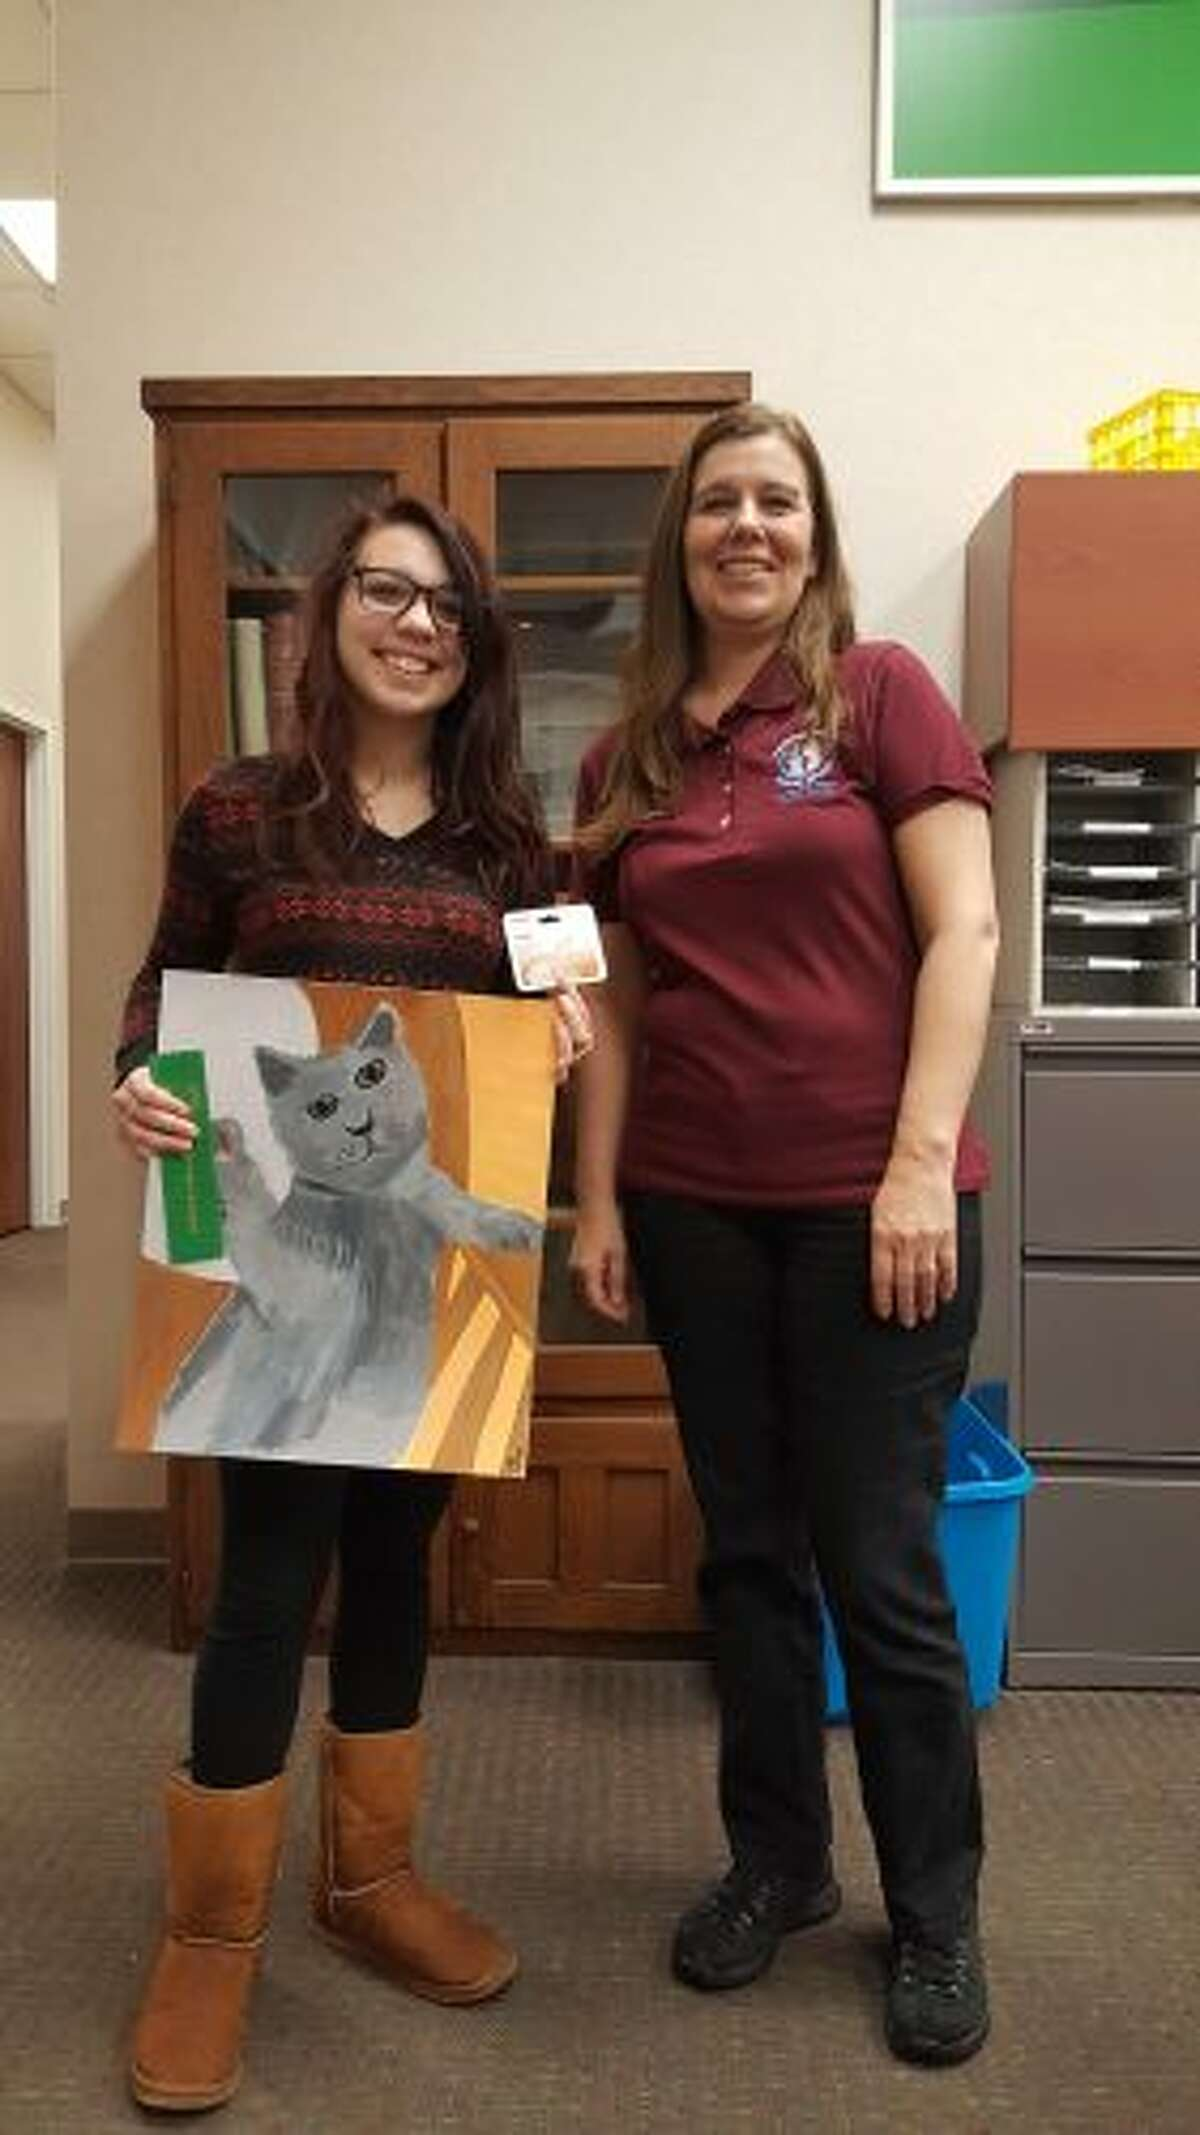 Homeward Bound Animal Shelter manager Shareen Edmondson (right) presented Cayenne Lasecki, of Manistee High School, with her prizes for the shelter's pet contest. (Courtesy photos)